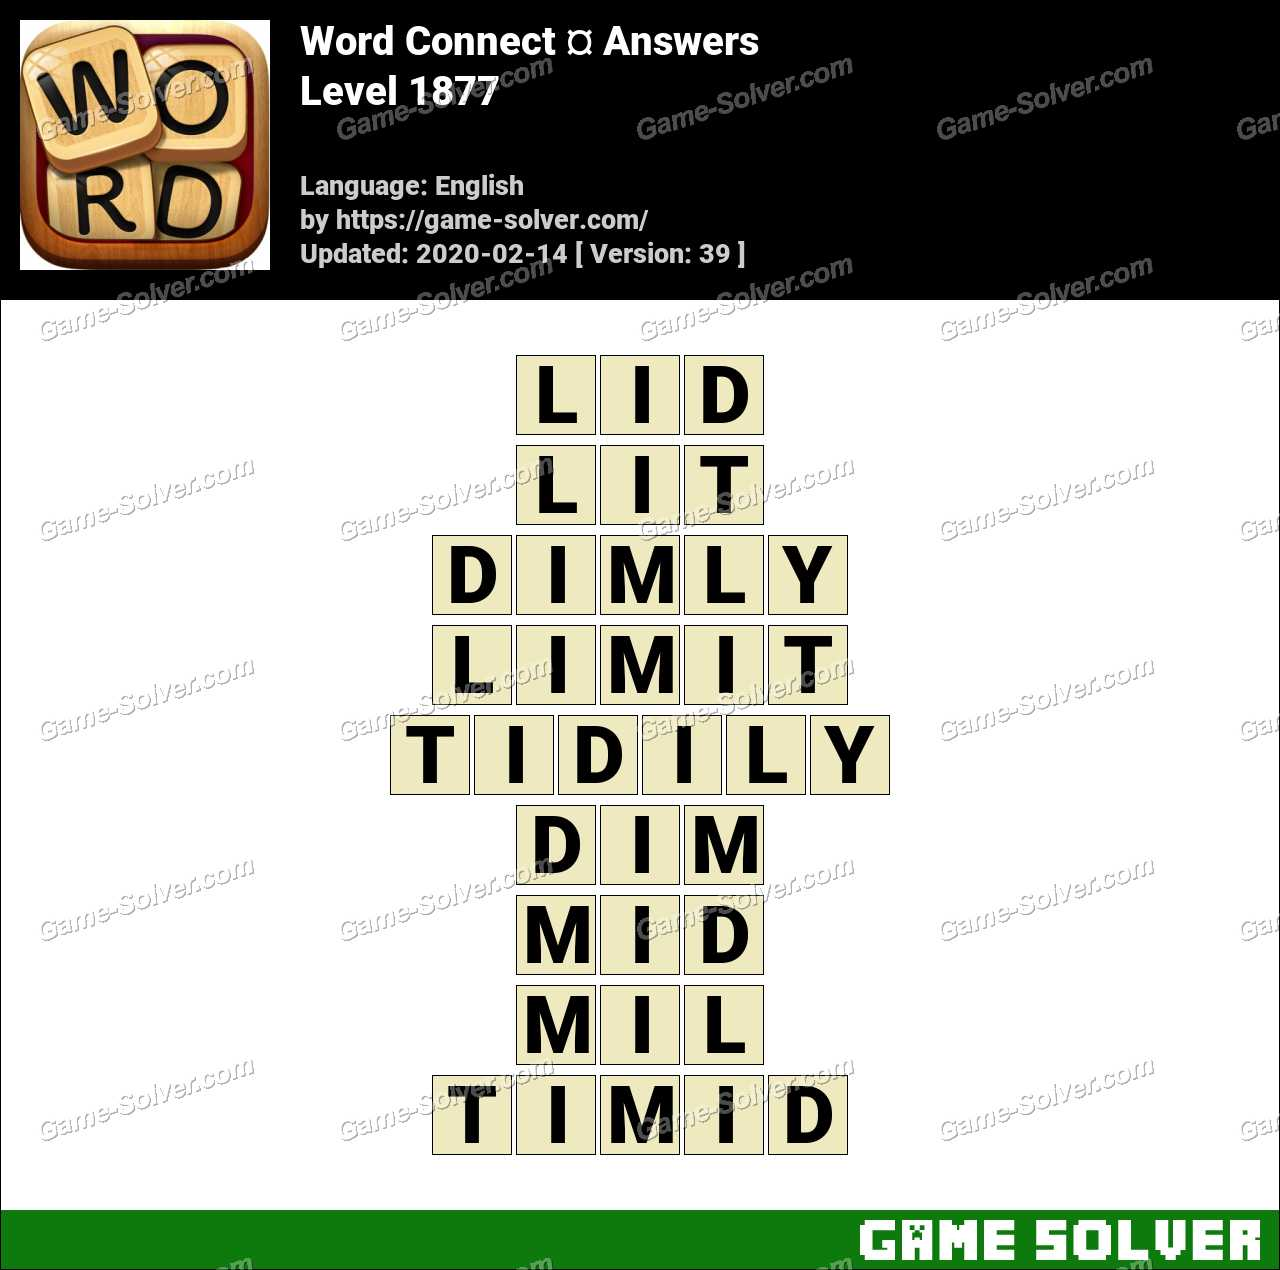 Word Connect Level 1877 Answers